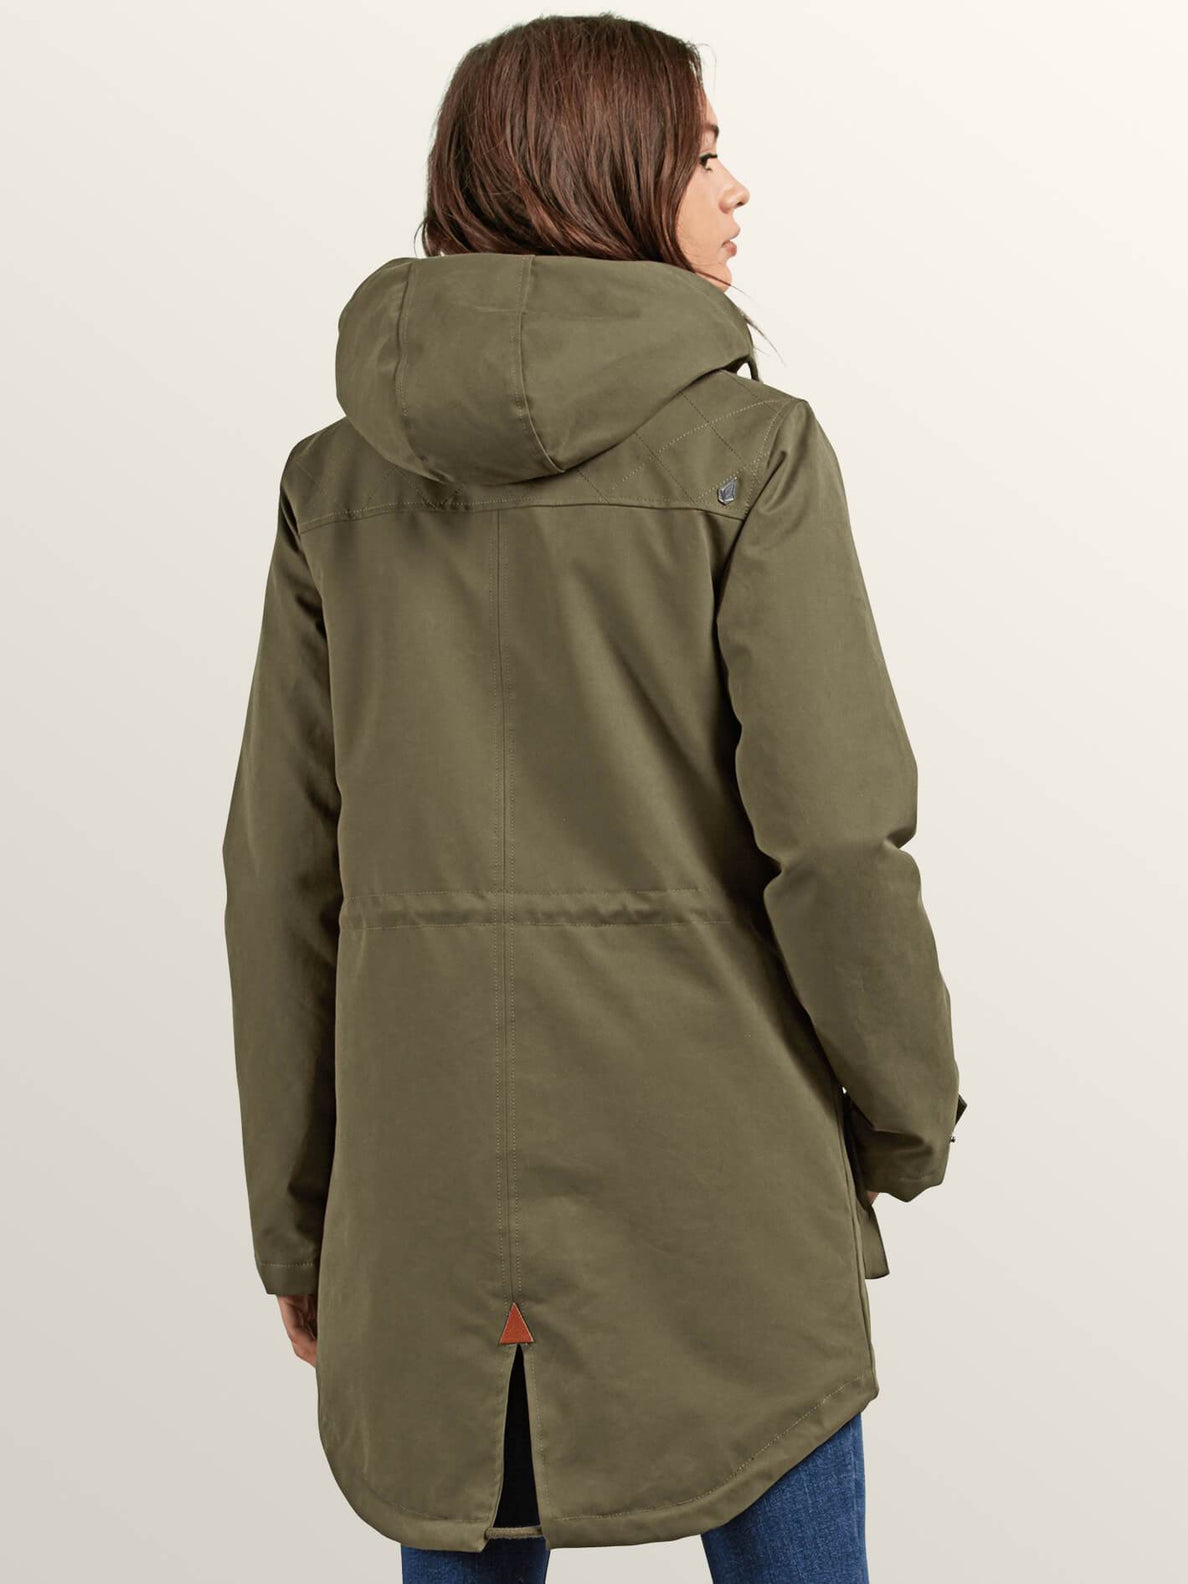 Walk On By Parka In Dark Camo, Back View